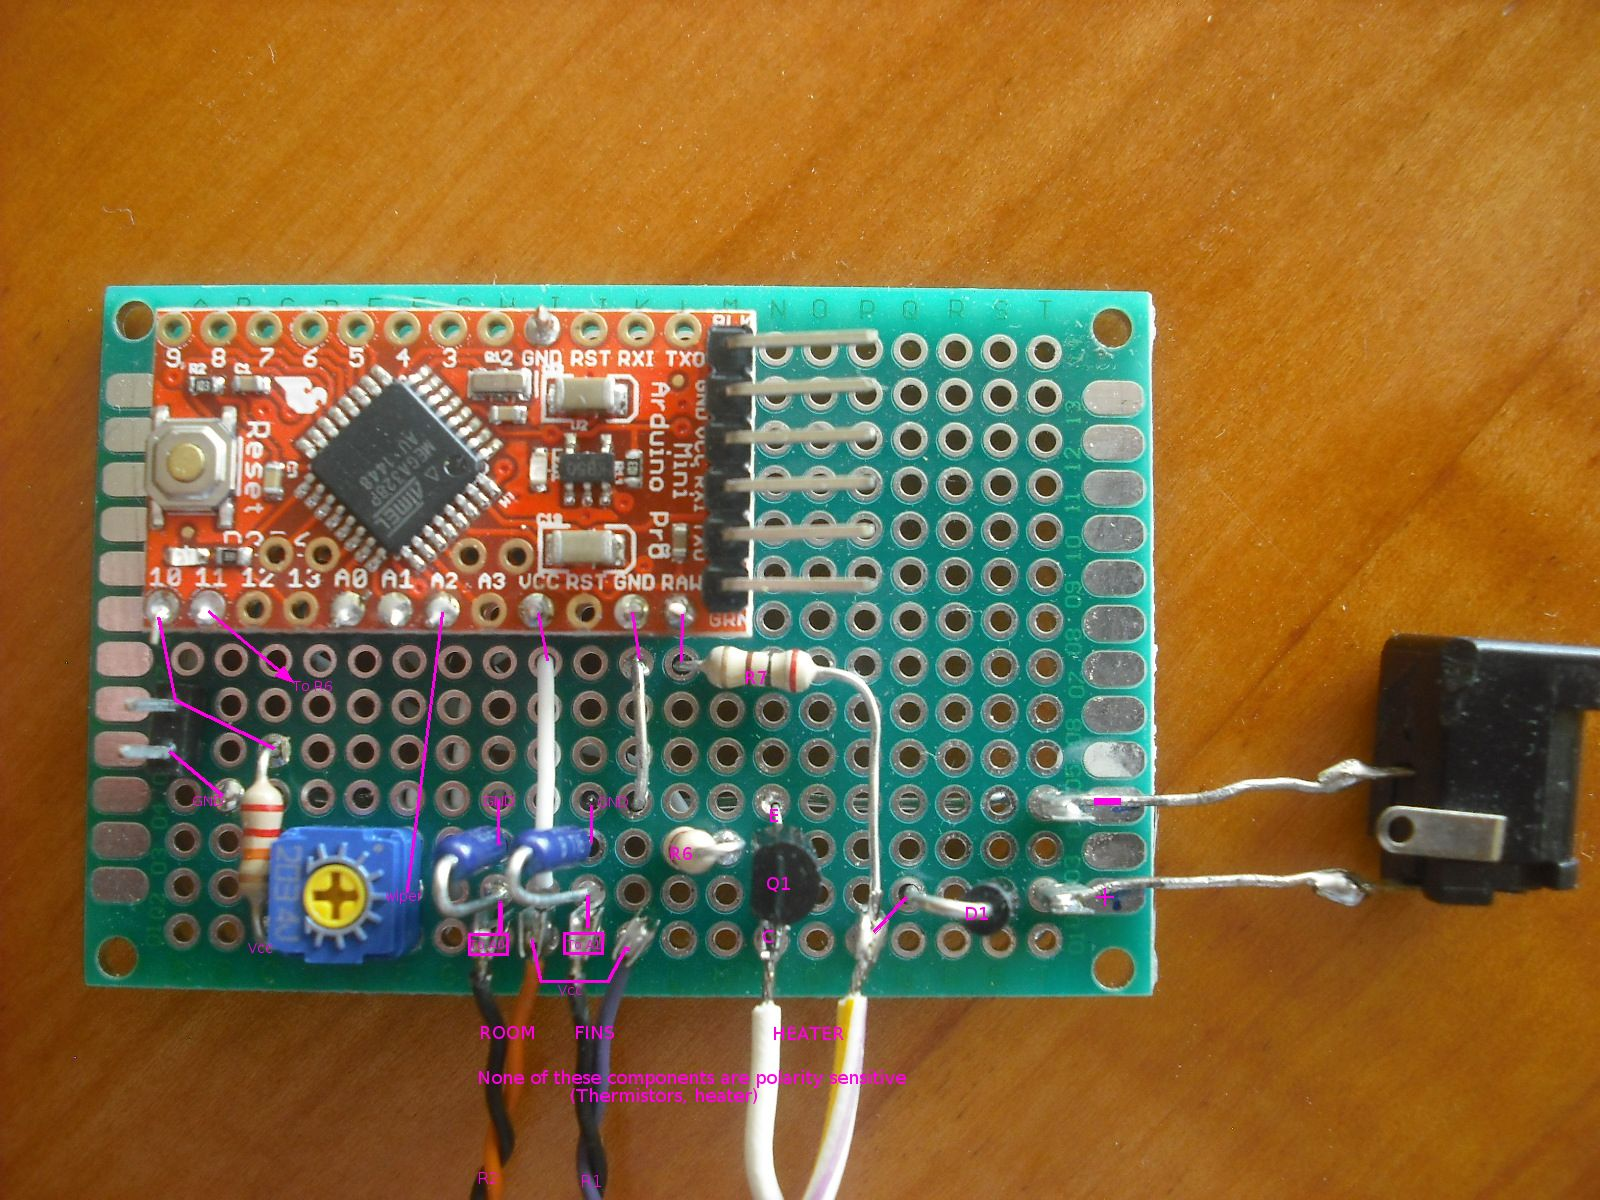 Coldsnap Air Conditioner Override Controller Farm Hack Make Your Own Temperature With An Arduino The Is Similar In Purpose And Basic Function To Commercial Coolbot But Simplified